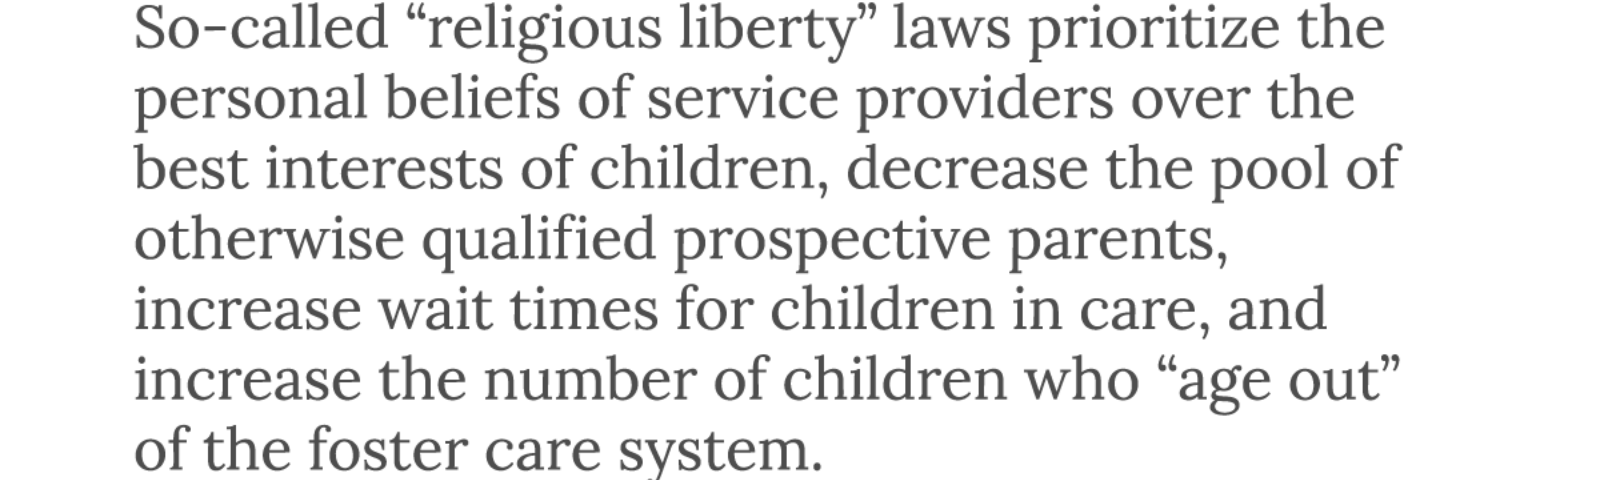 Religious Exemptions for Child Welfare Agencies: A License to Discriminate Against LGBTQ Parents and Children